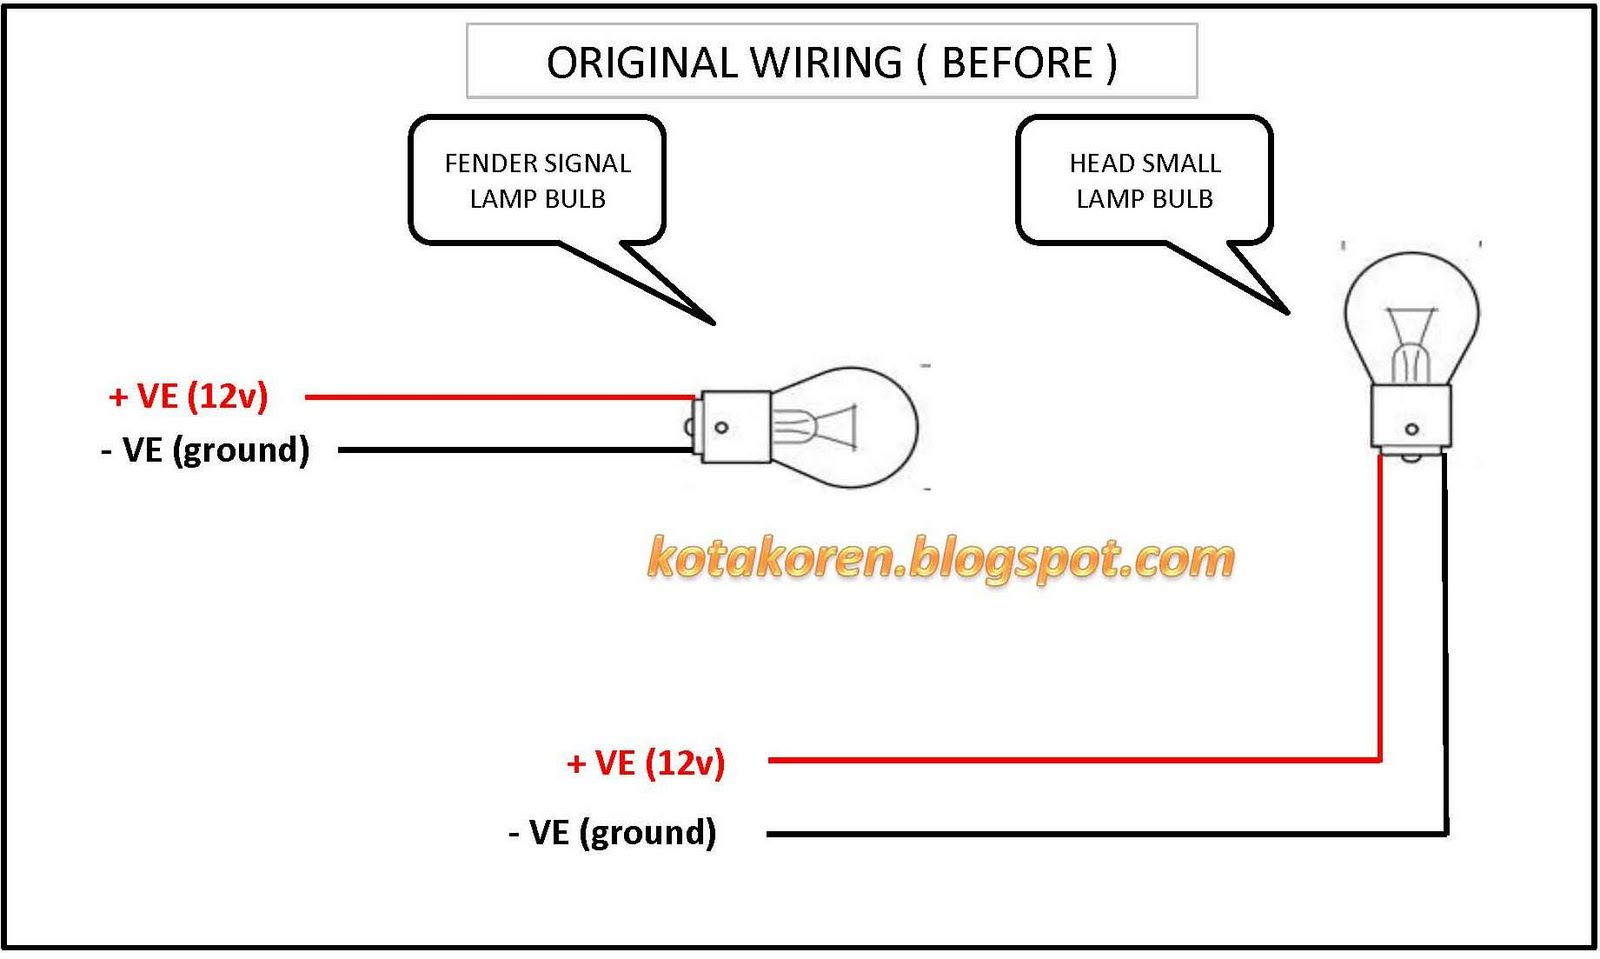 diy side fender lamp wira kotak oren rh kotakoren blogspot com Lamp with Three Lights Wiring Lamp Wiring Diagram